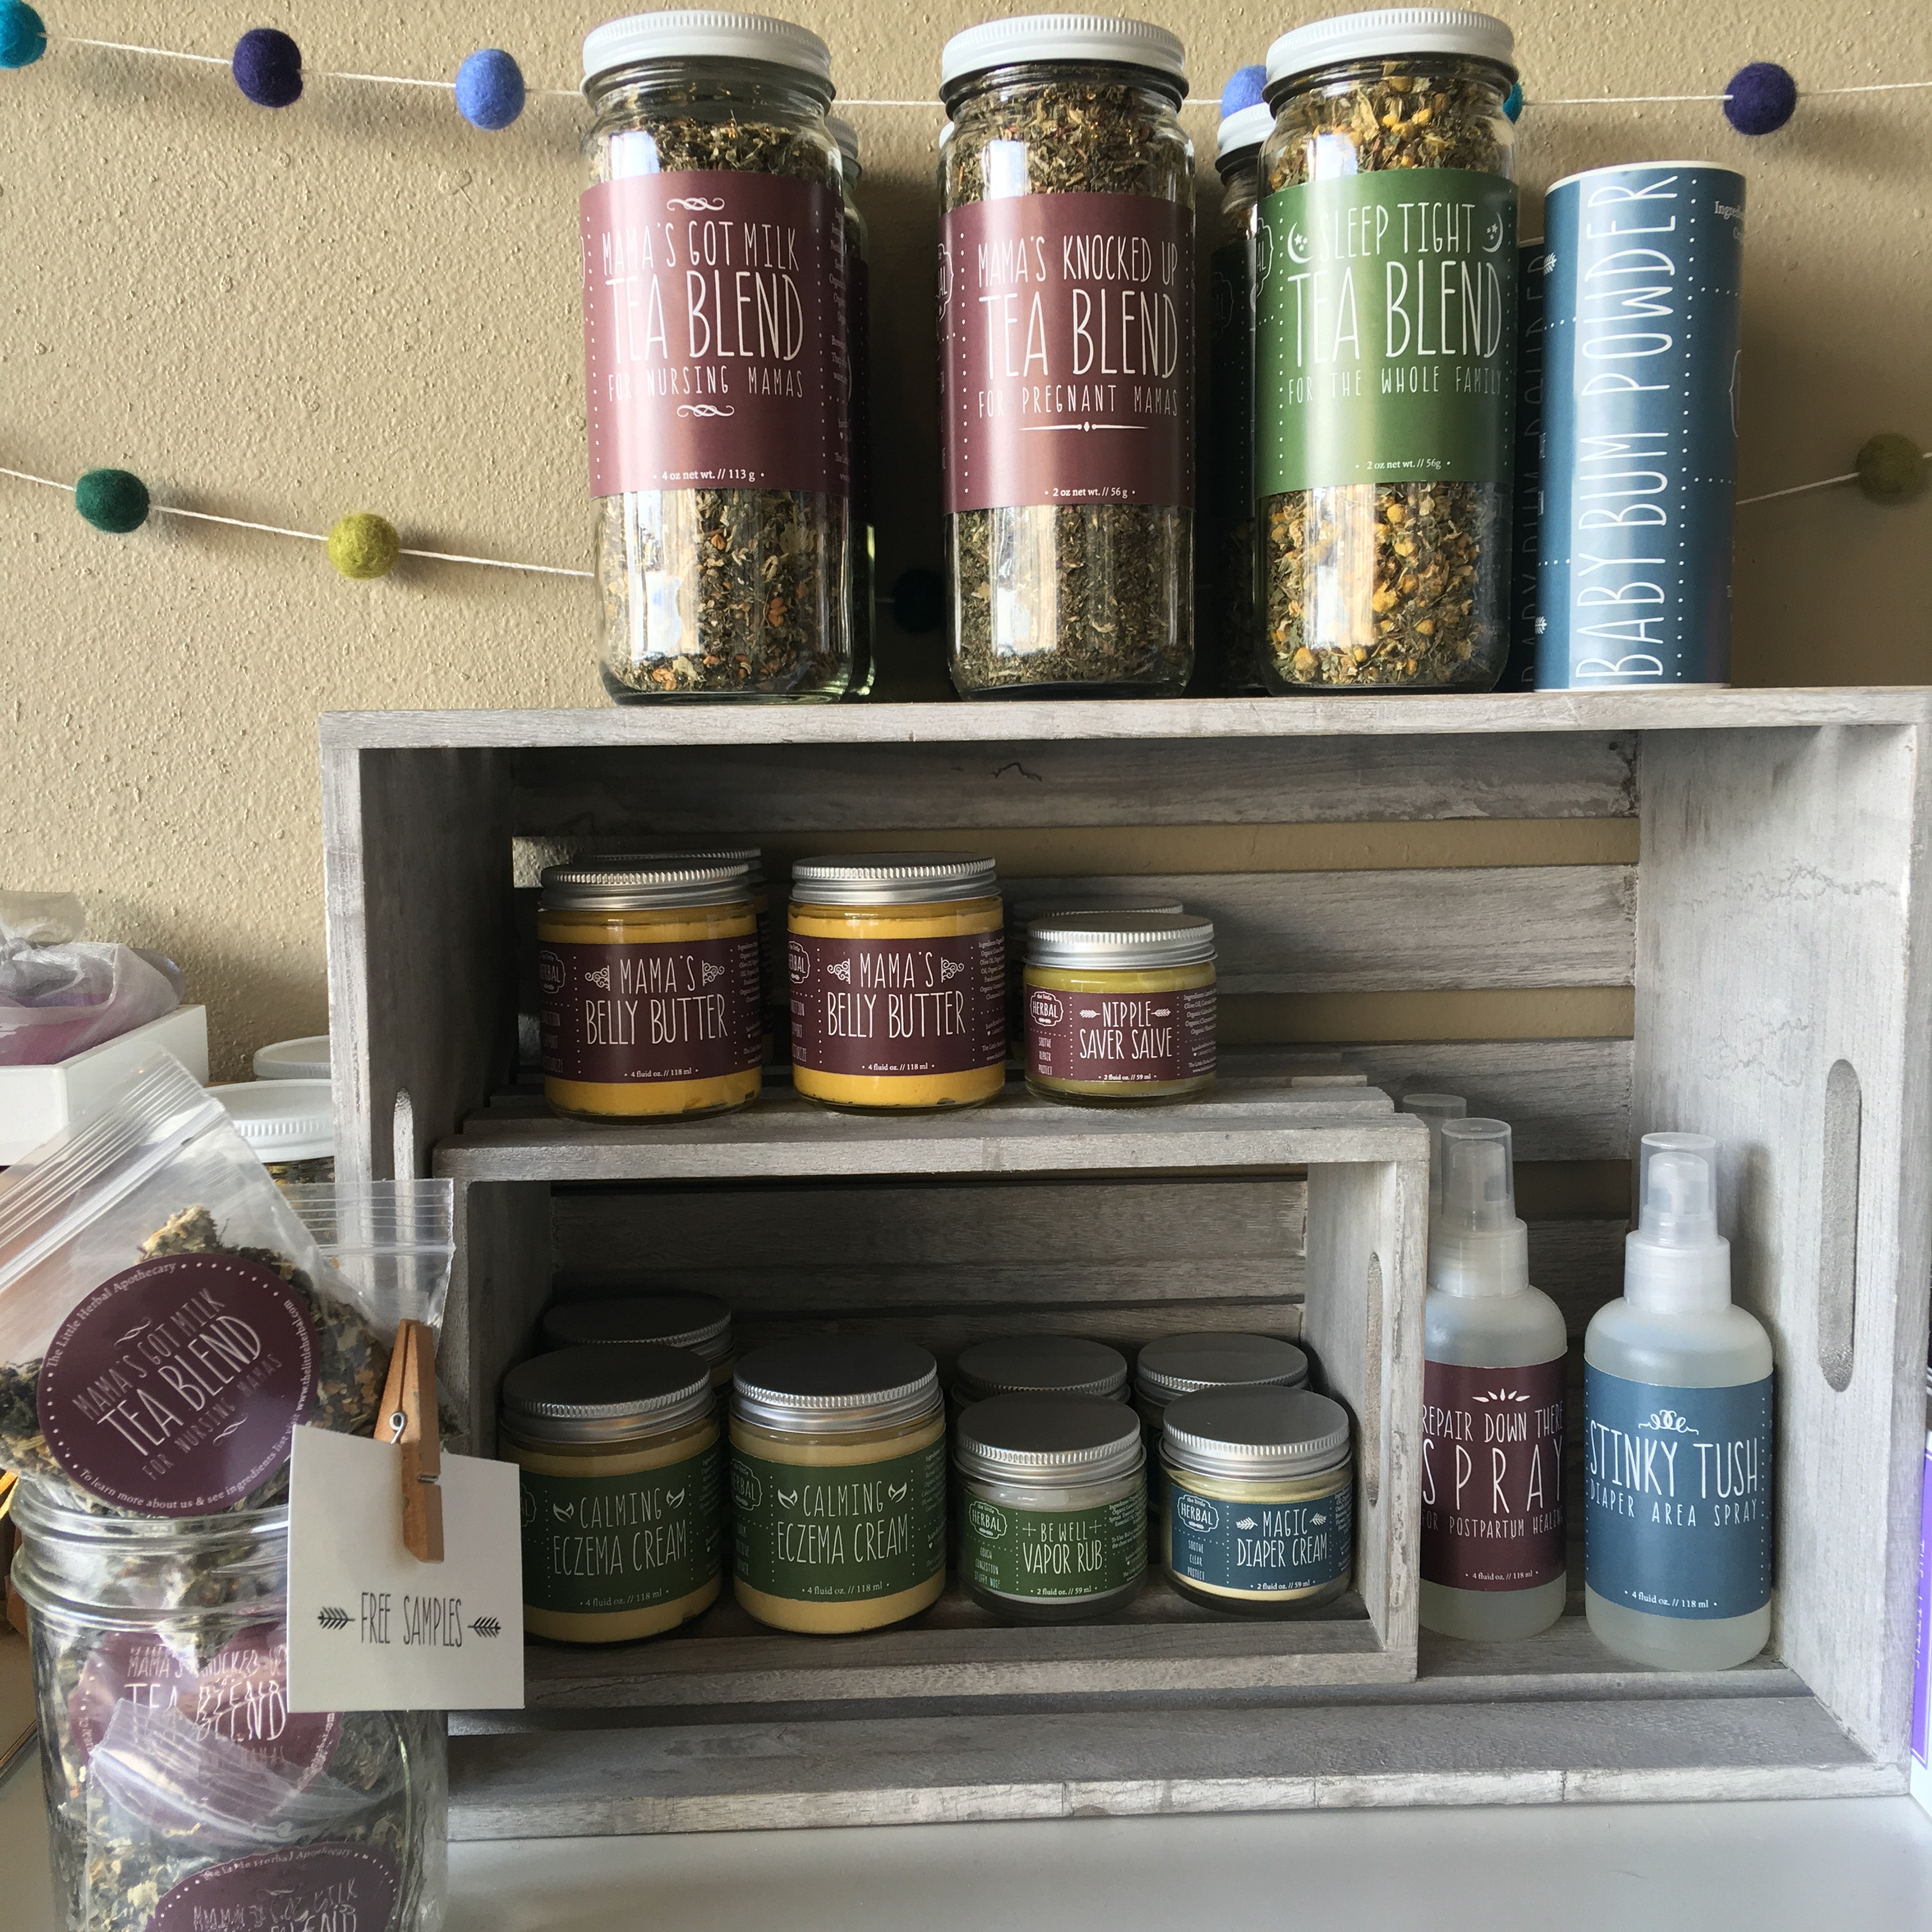 Natural skincare products made locally by The Little Herbal Apothocary